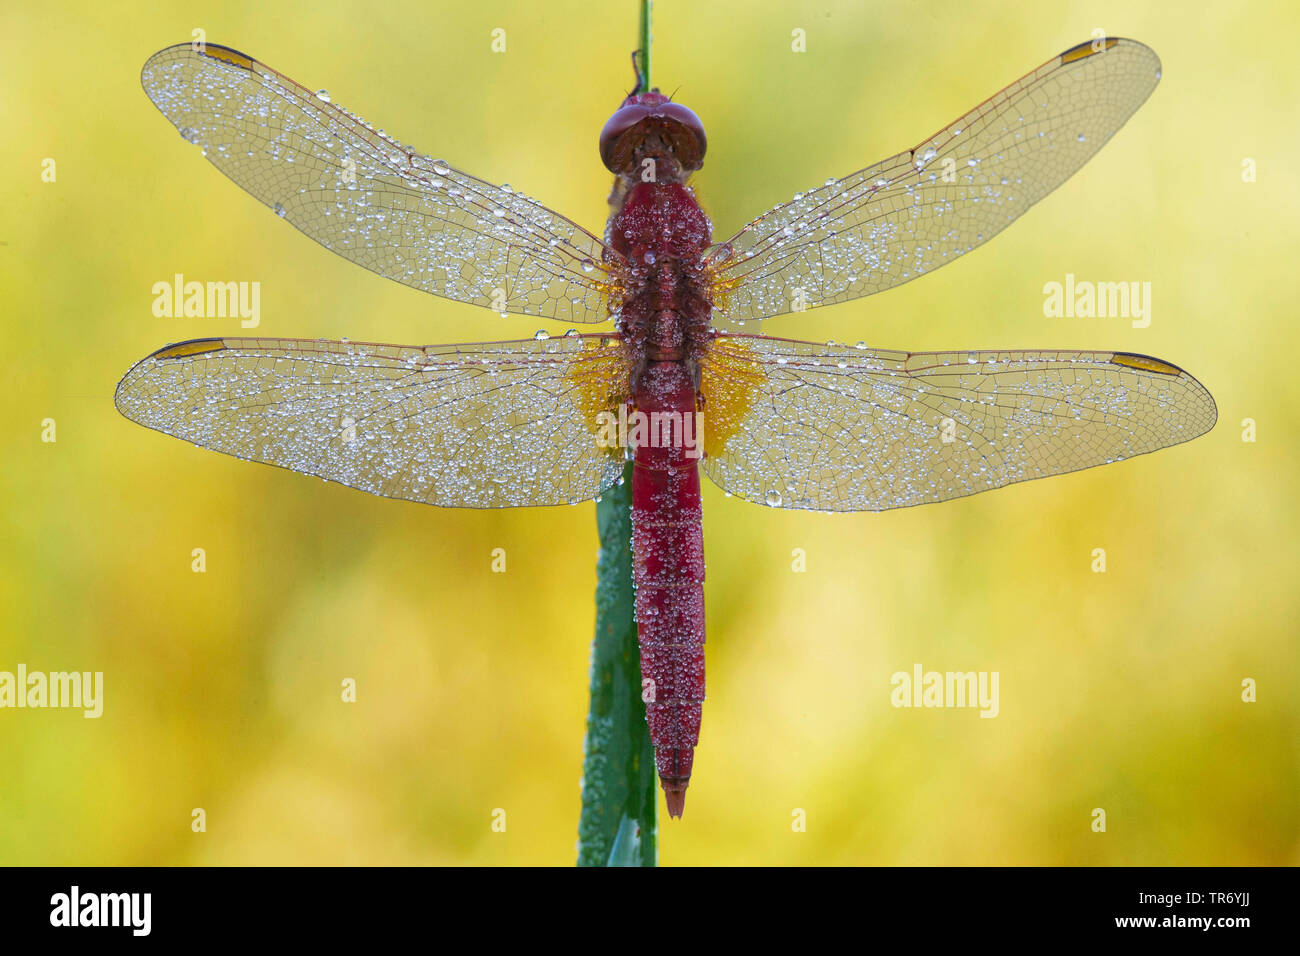 Broad Scarlet, Common Scarlet-darter, Scarlet Darter, Scarlet Dragonfly (Crocothemis erythraea, Croccothemis erythraea), male with dewdrops at a spear, Germany, Bavaria Stock Photo